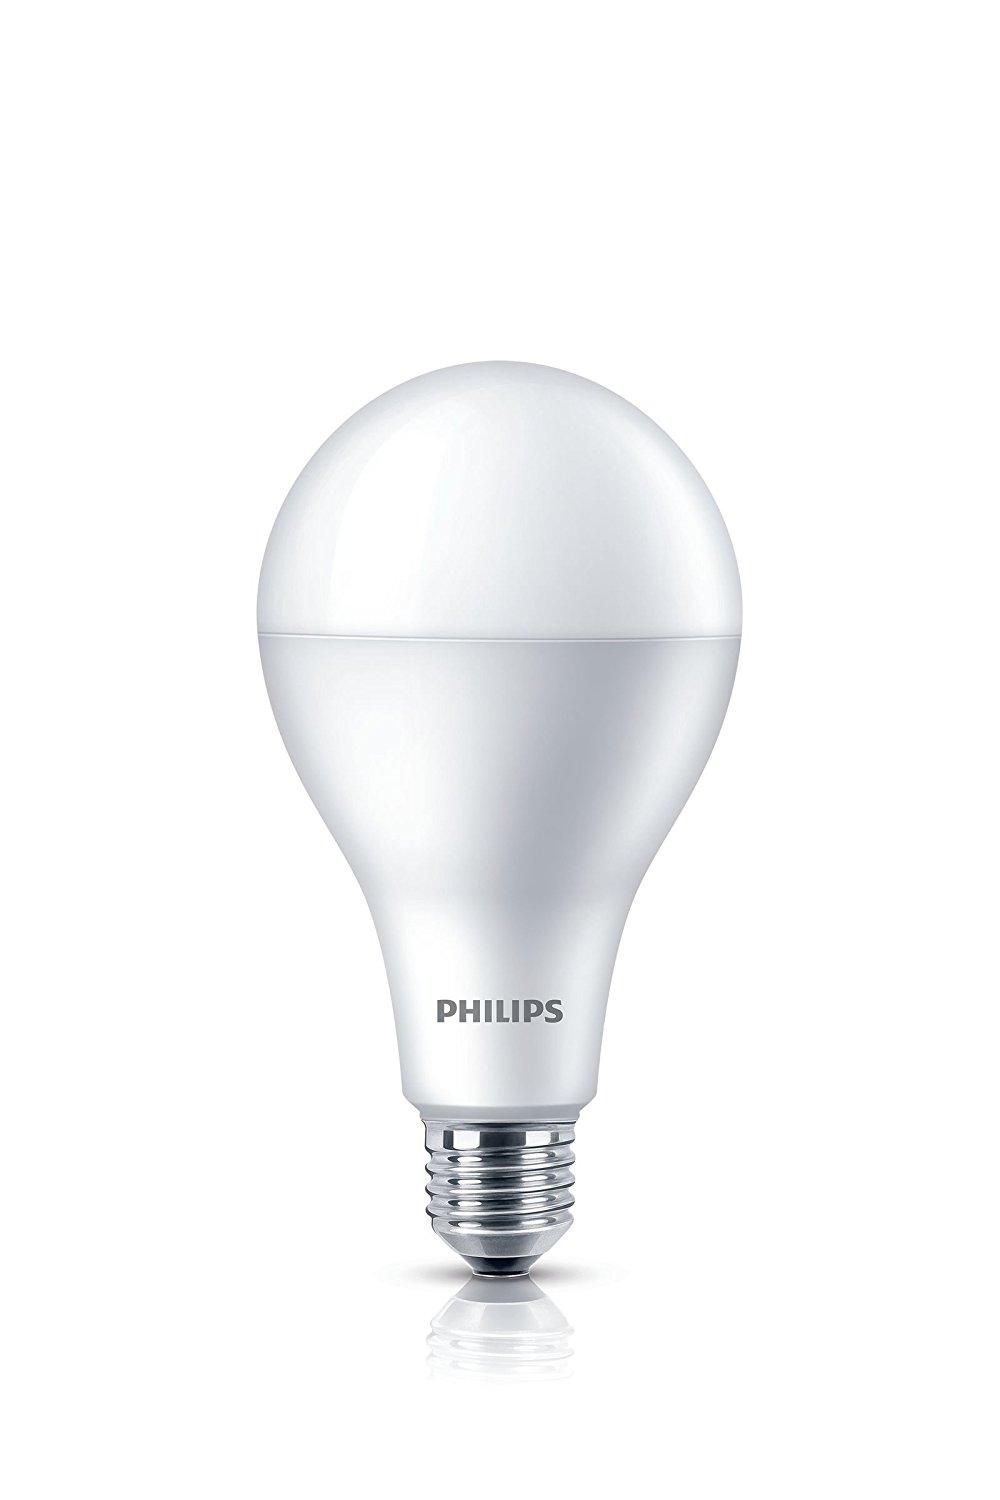 Price Philips Led Bulb Durable Brightness 27W E27 220 240V Cool Daylight 8718696715468 Philips New